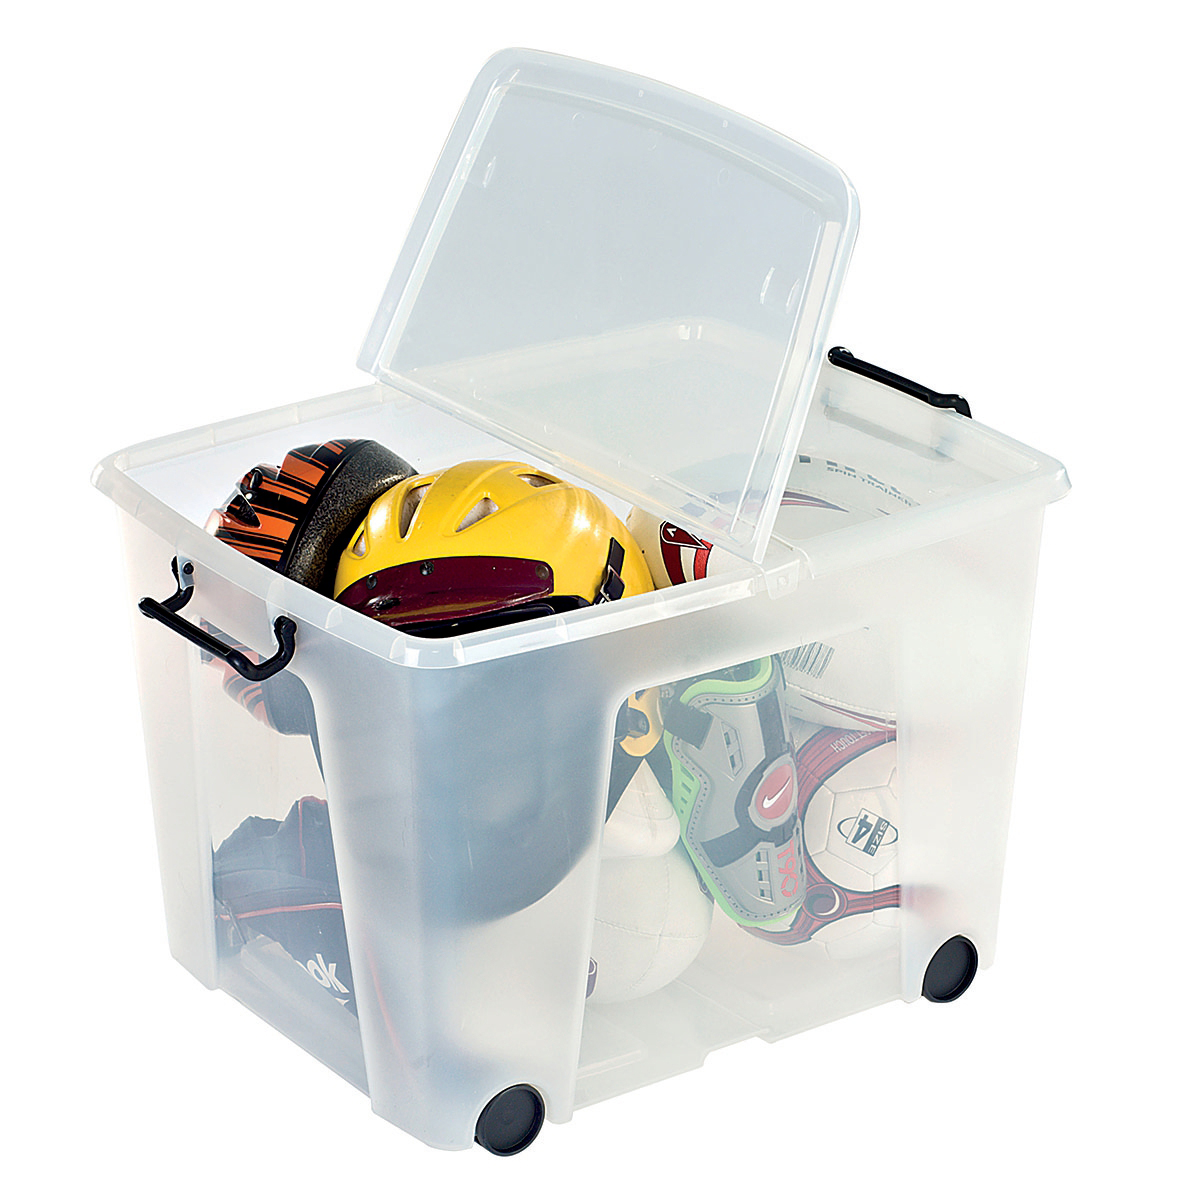 Storage Boxes Strata Smart Box Clip-On Folding Lid Carry Handles 75 Litre Clear with Black Wheels Ref HW676CLR